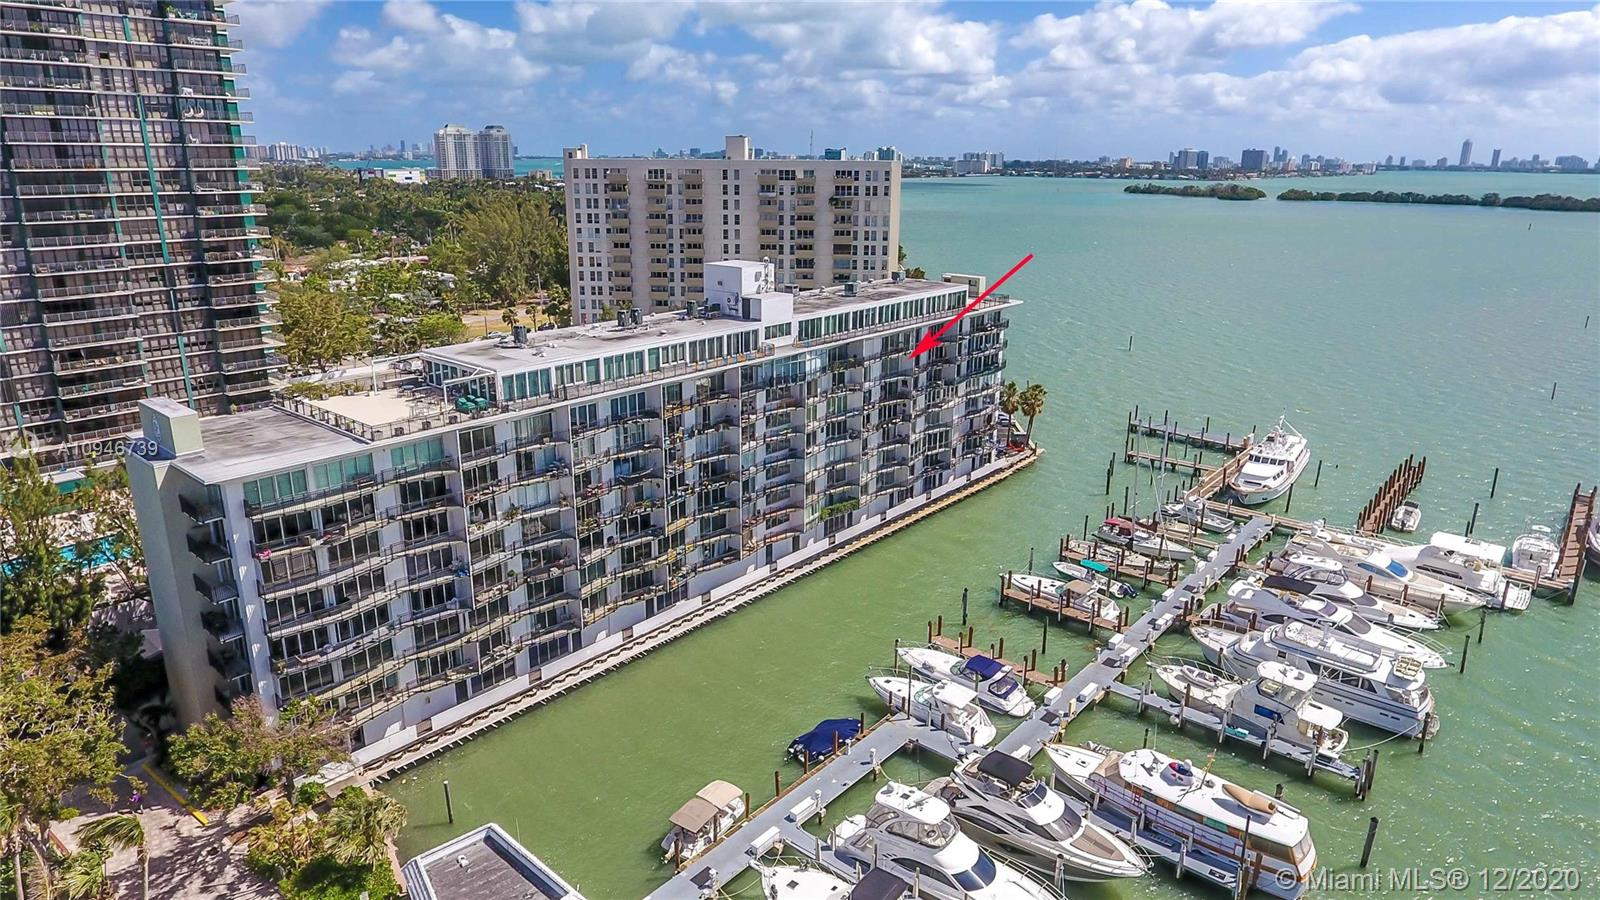 770 NE 69th St # 5B, Miami, Florida 33138, 2 Bedrooms Bedrooms, ,2 BathroomsBathrooms,Residential,For Sale,770 NE 69th St # 5B,A10946739